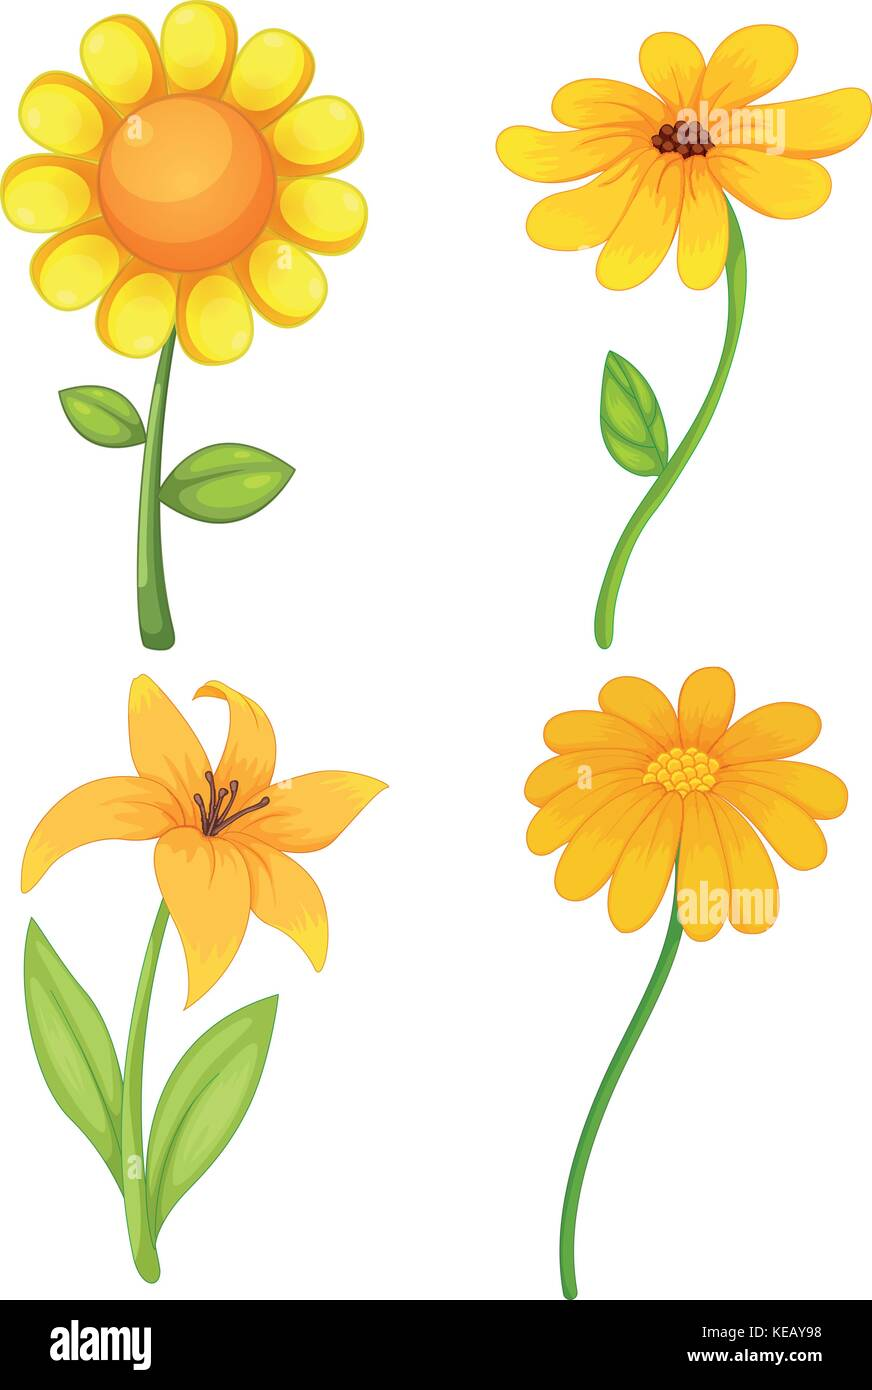 Four Different Kinds Of Yellow Flowers Stock Vector Art